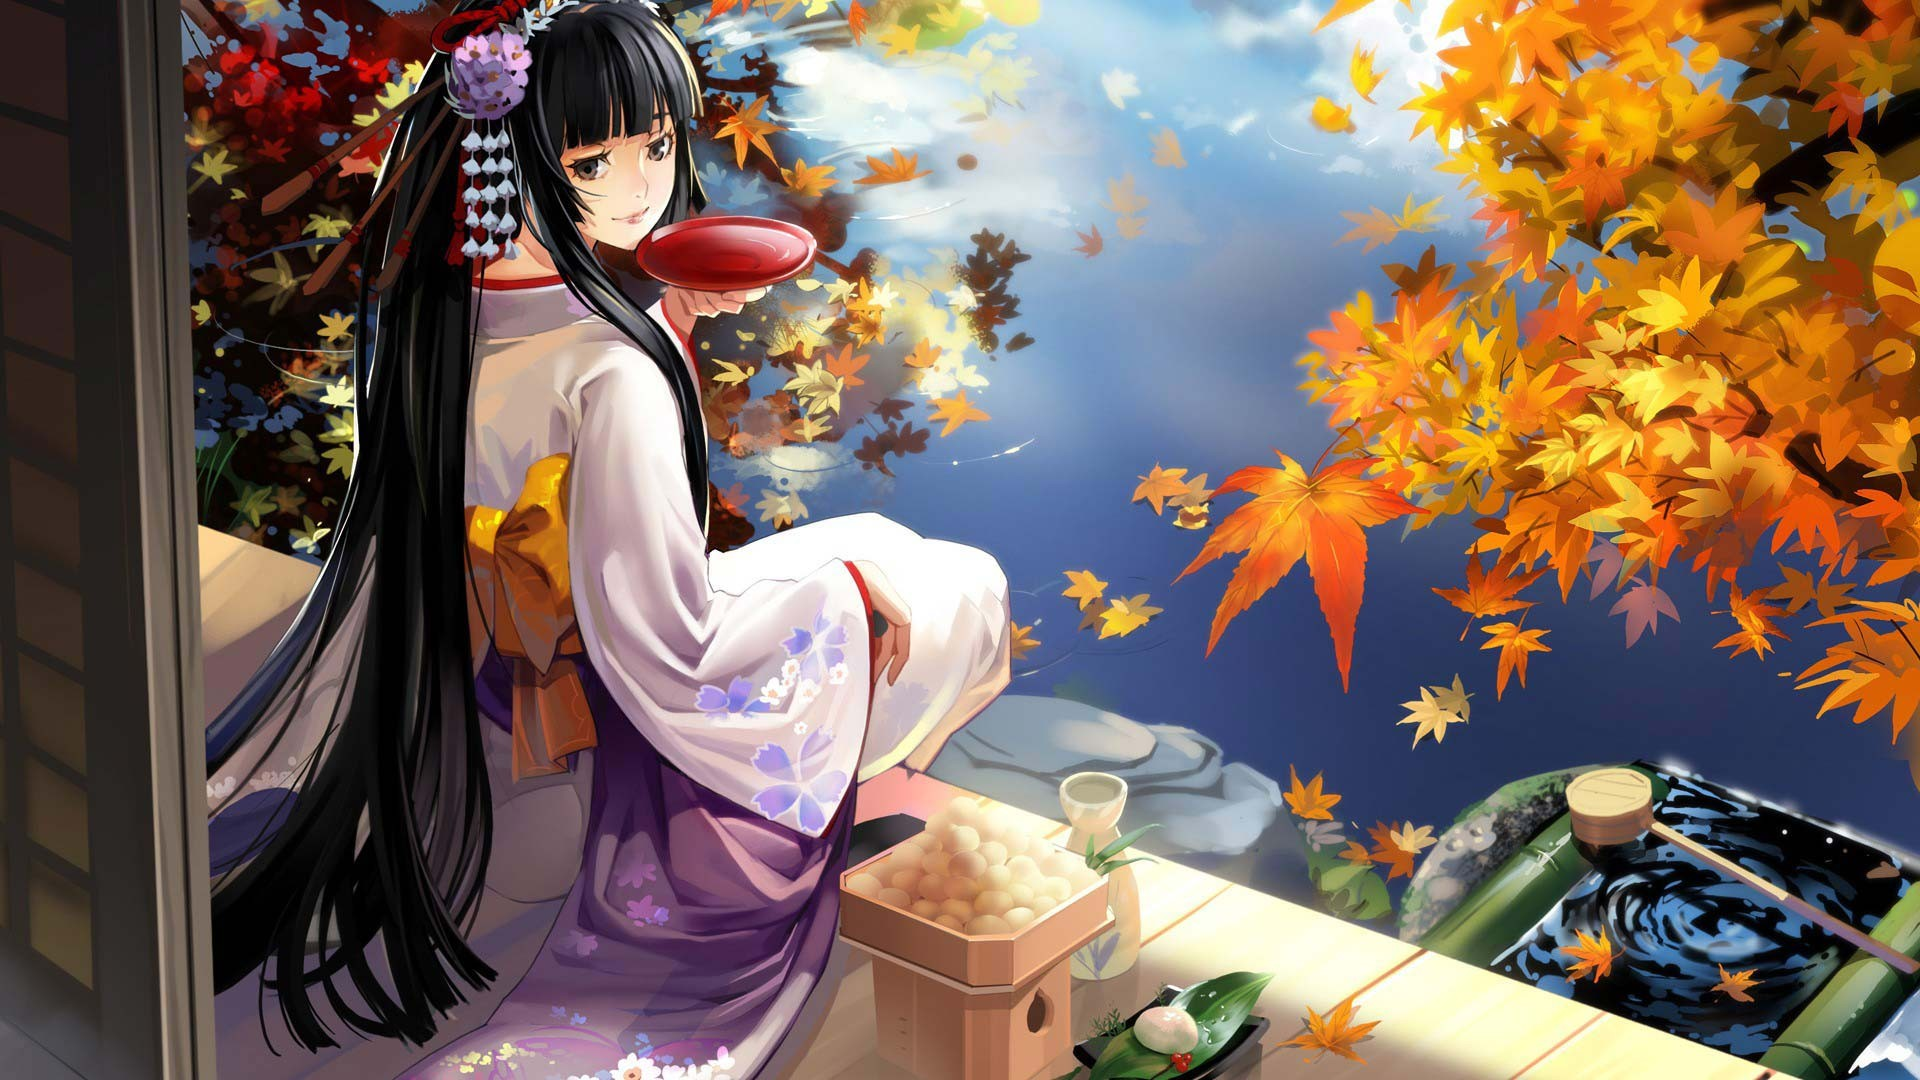 1920x1080 cute anime wallpapers hd free download